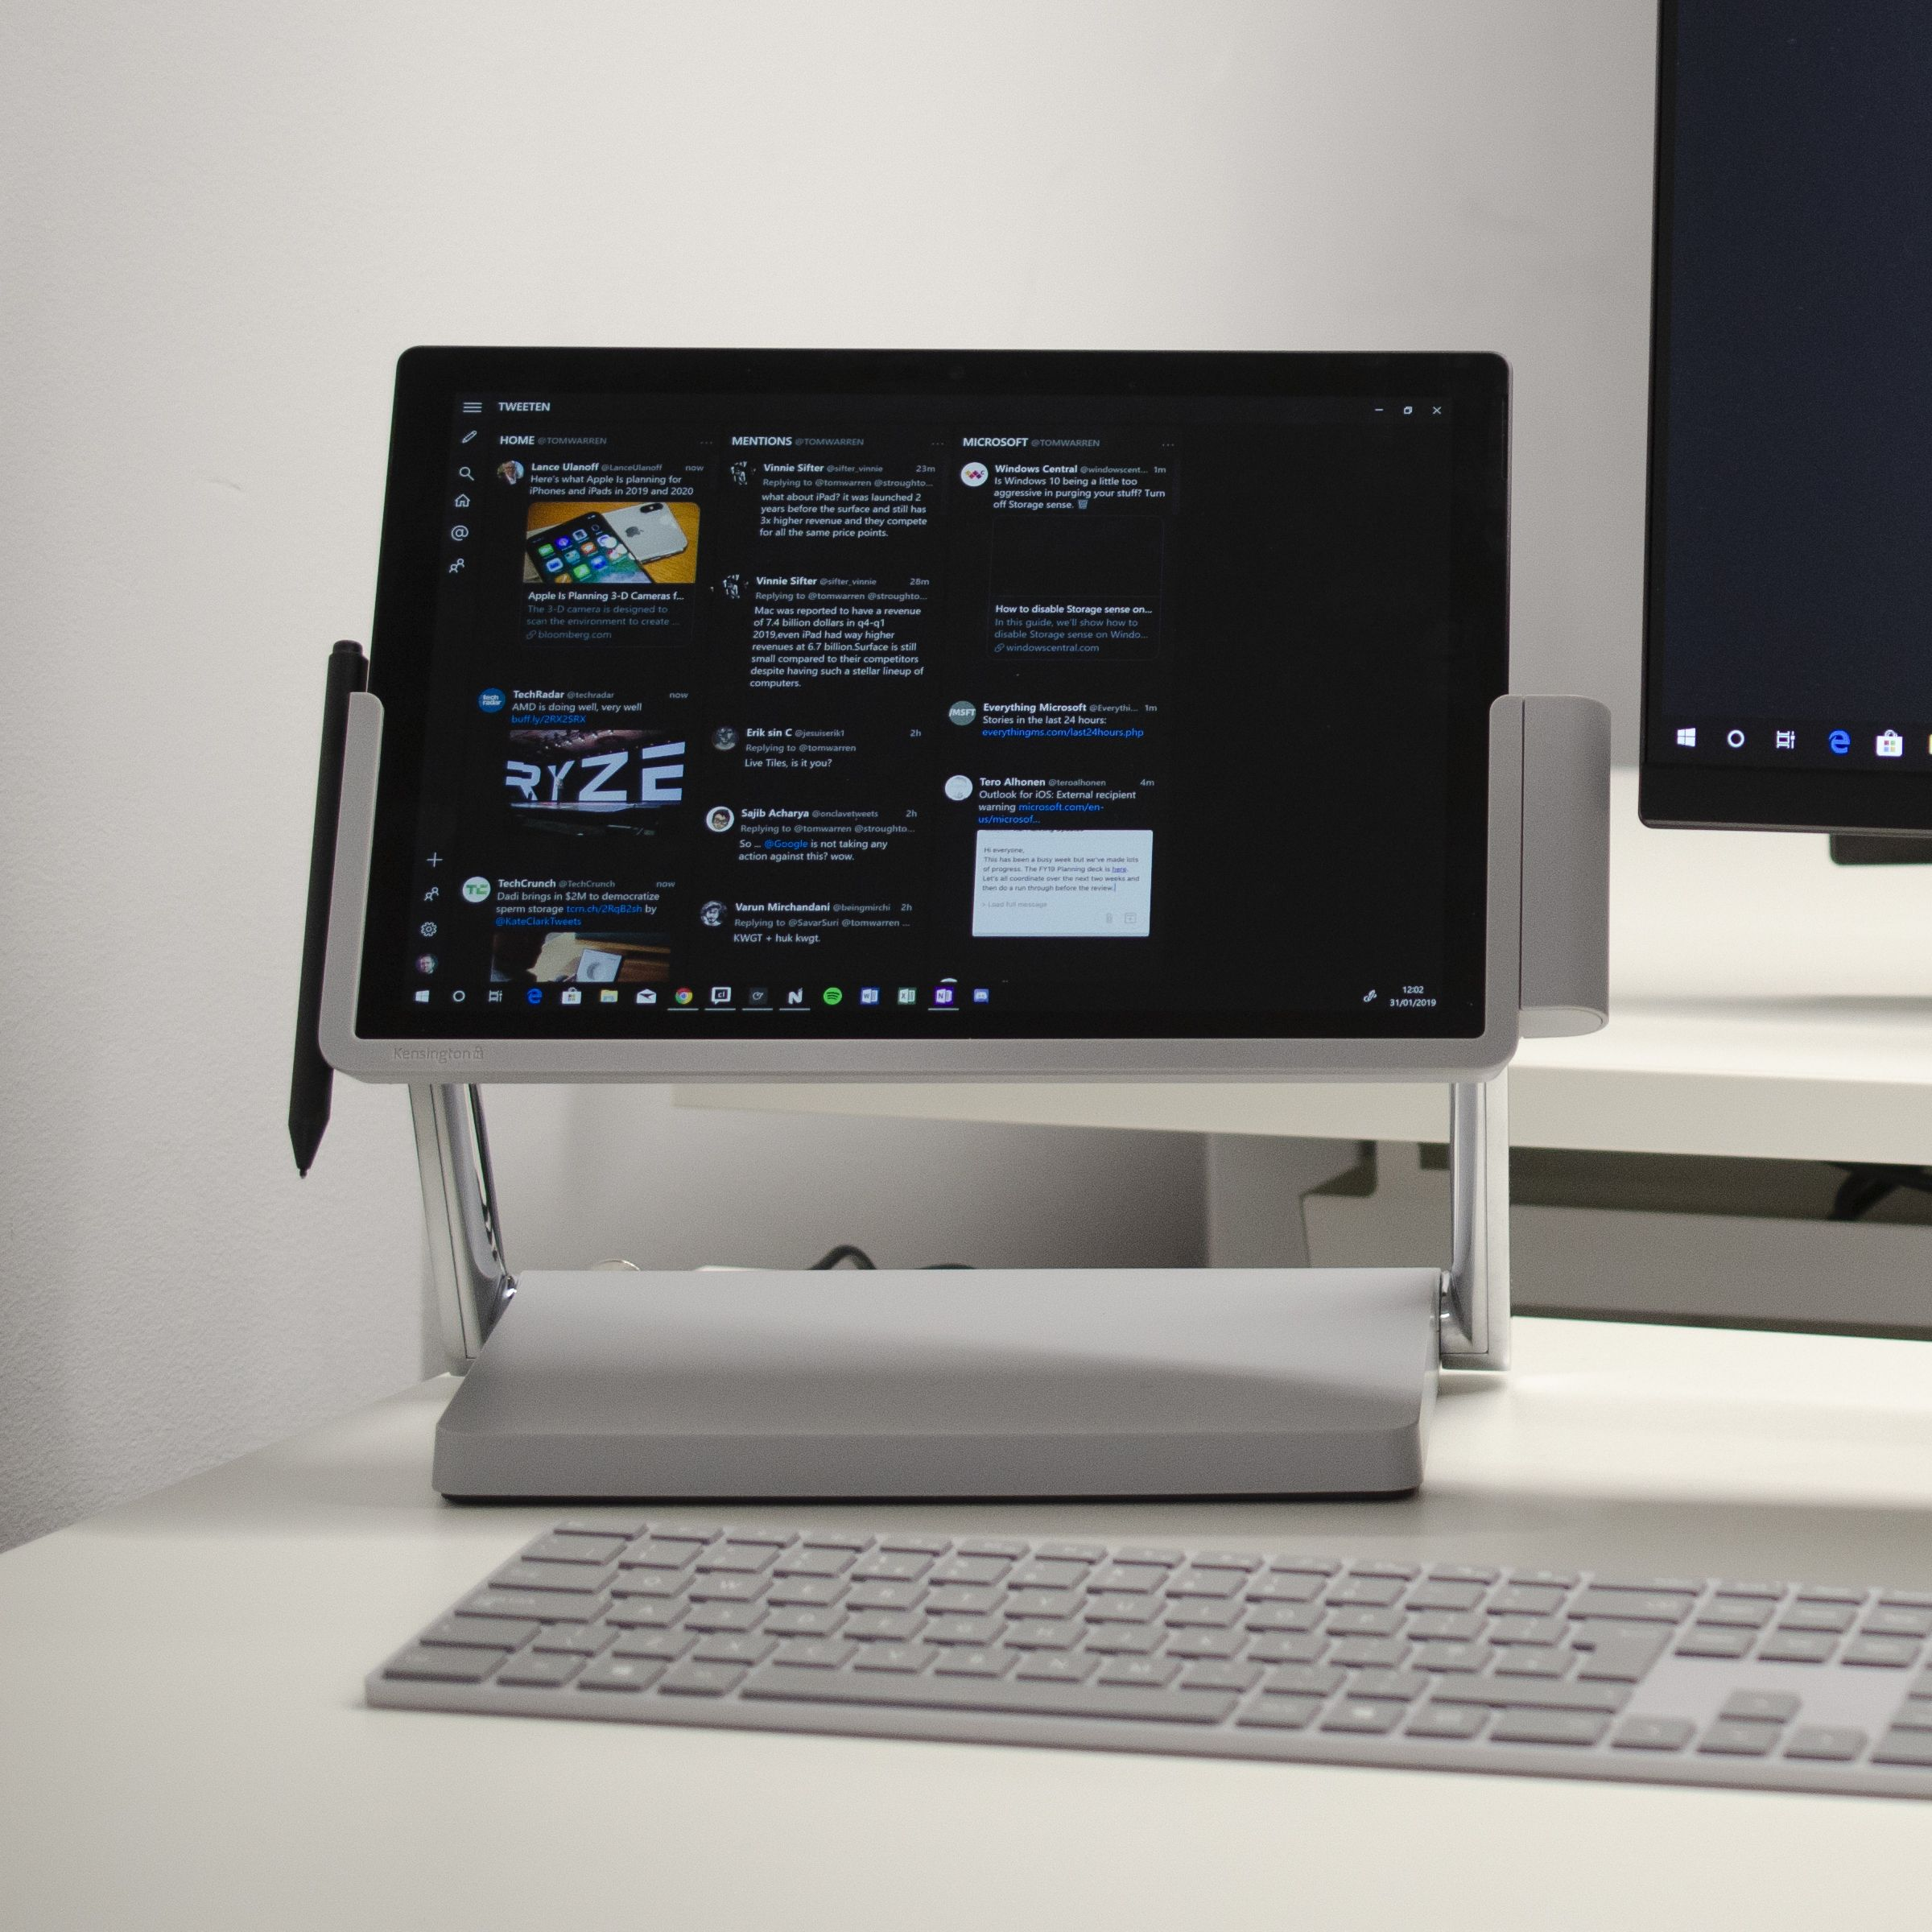 This is the Surface dock that Microsoft should have created